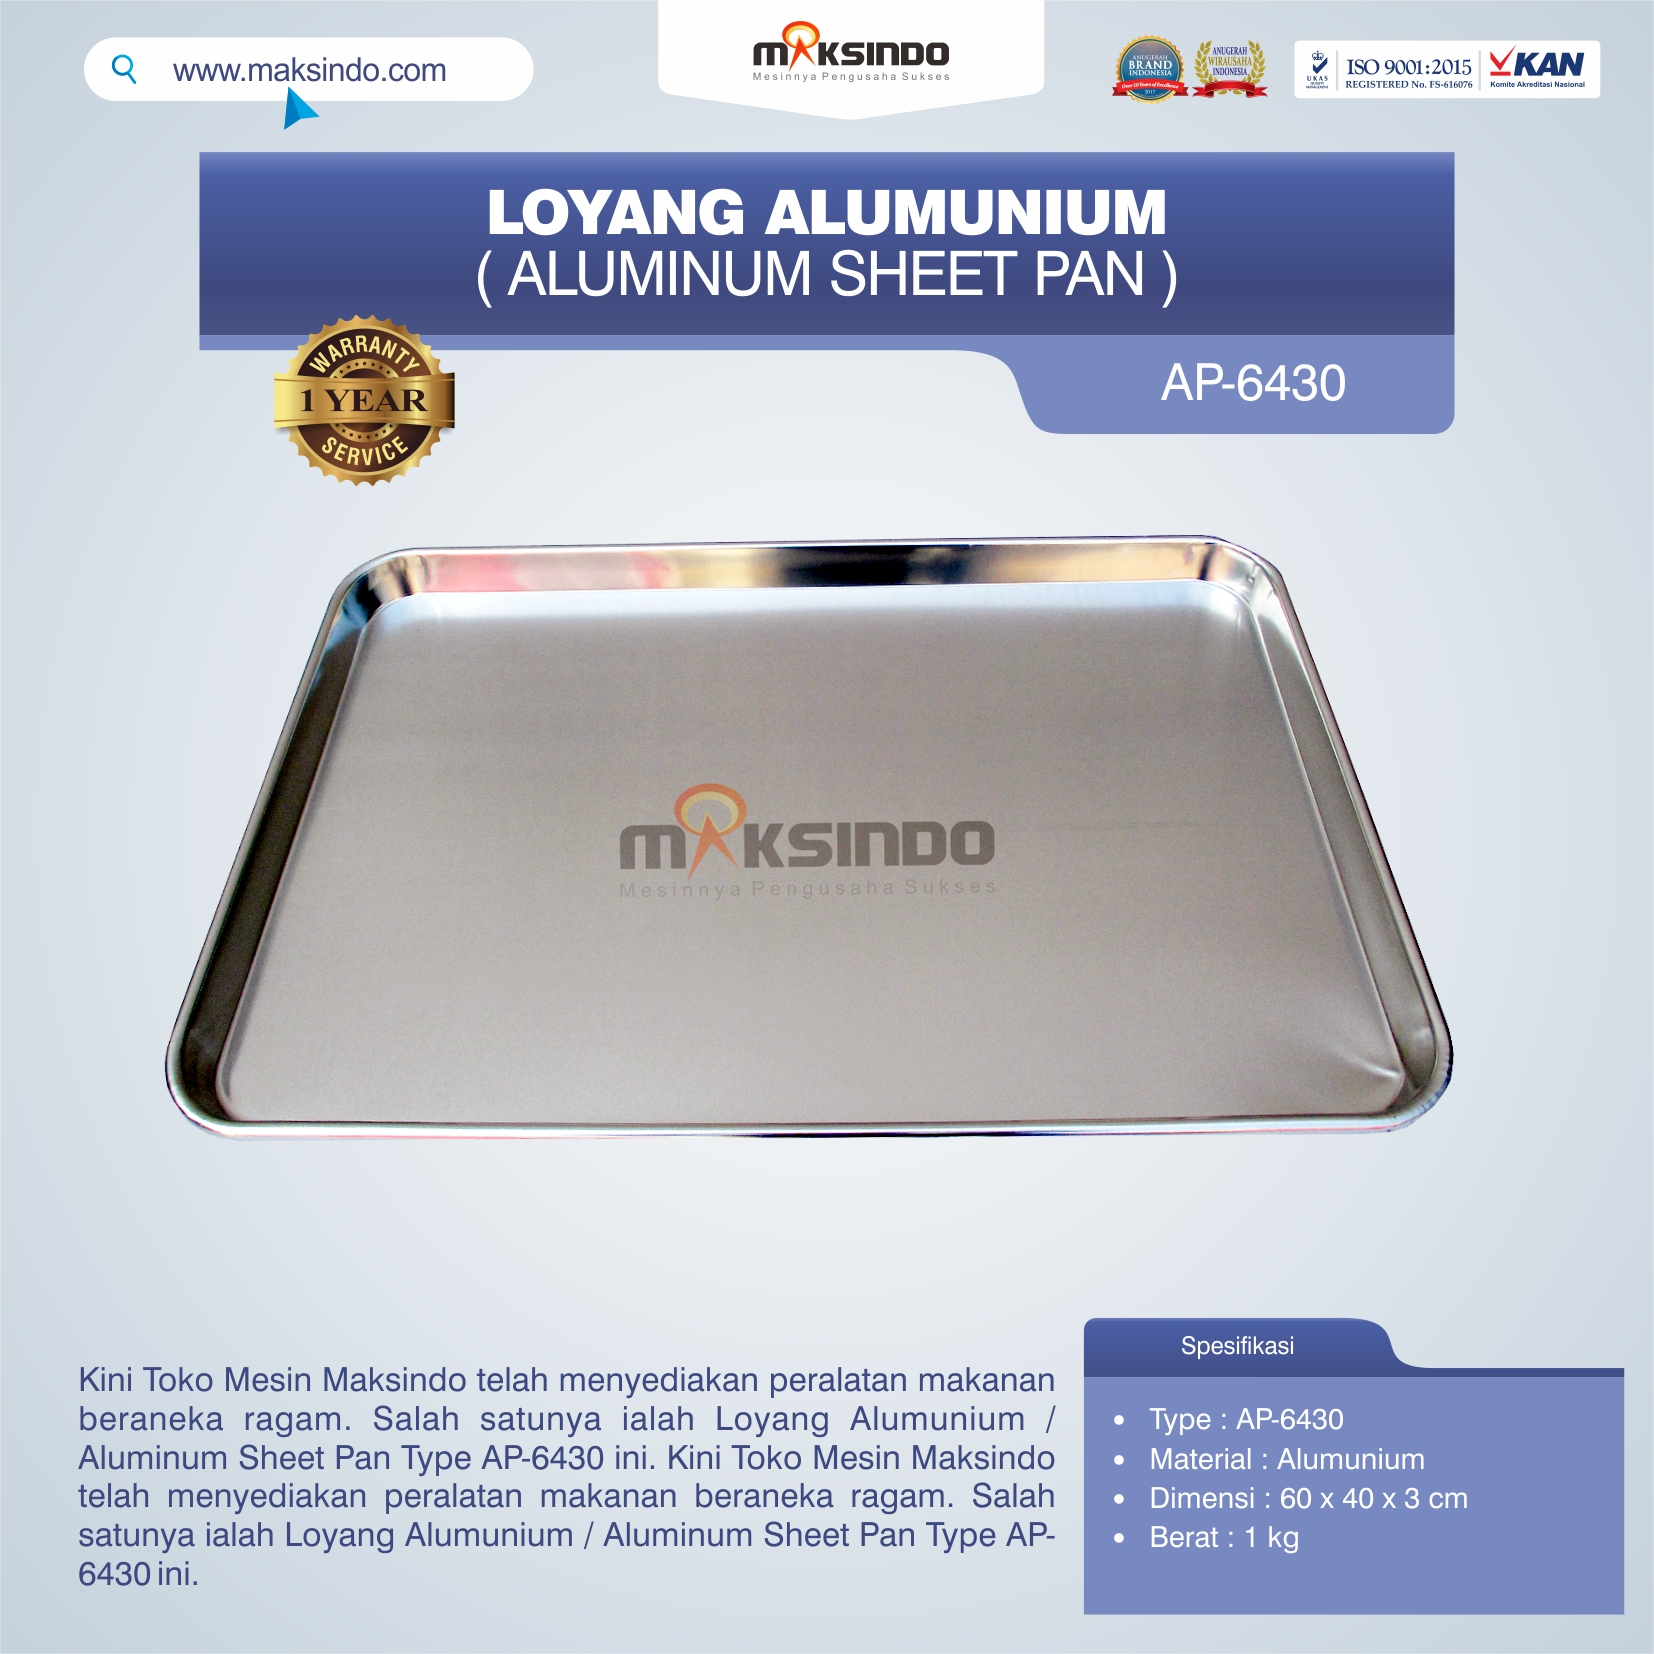 Loyang Alumunium / Aluminum Sheet Pan Type AP-6430